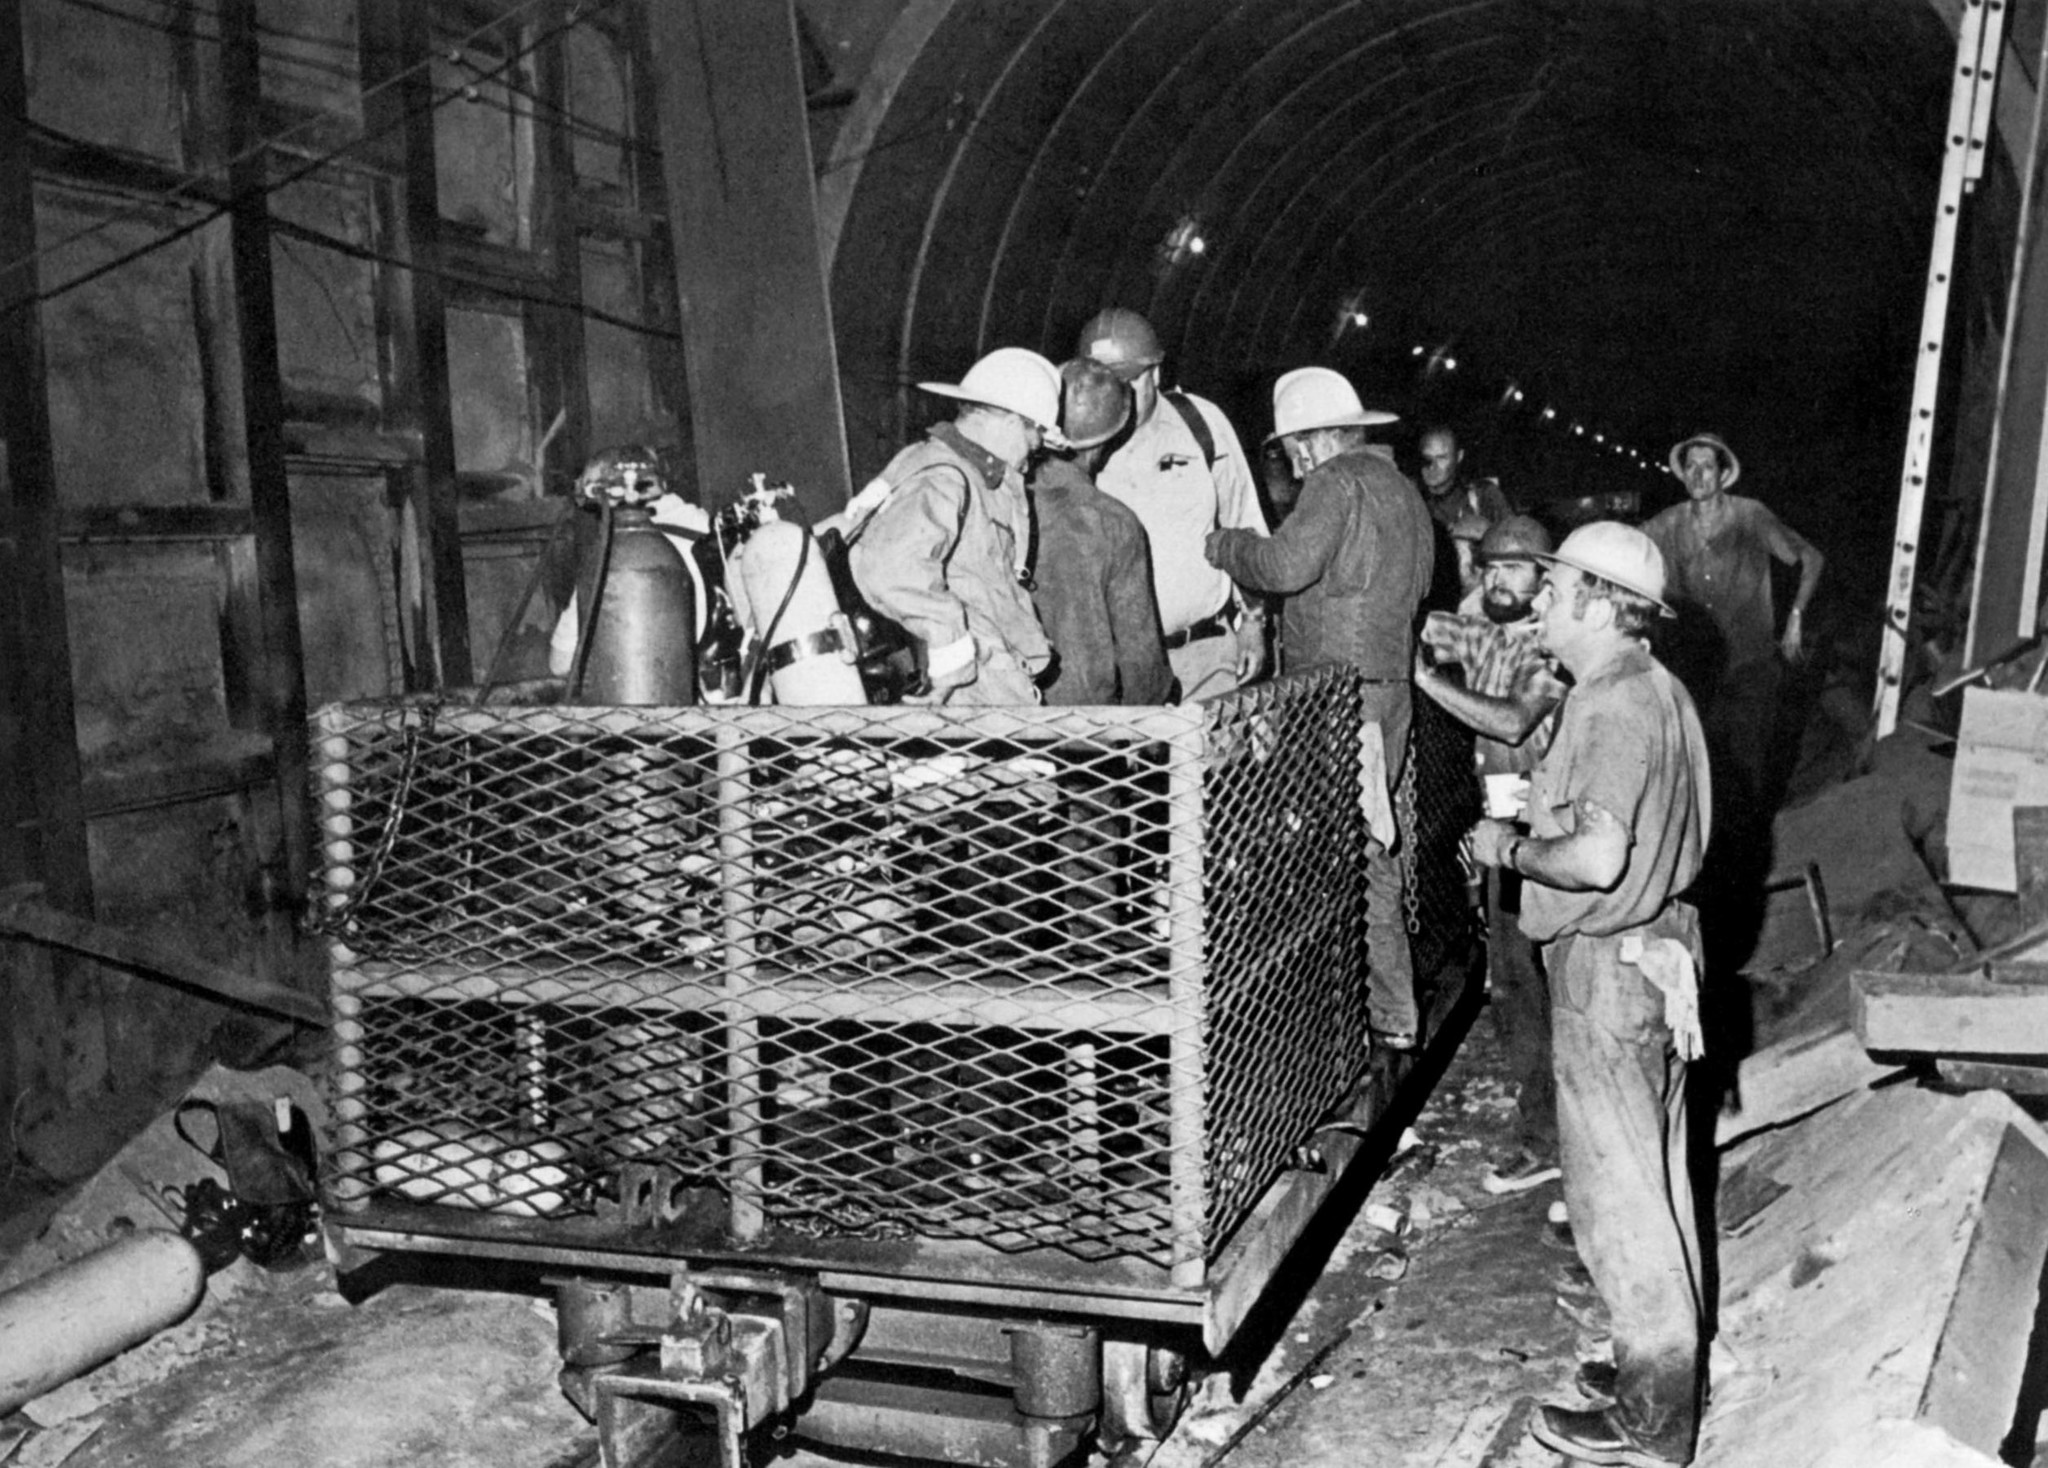 June 24, 1971: Workers and firemen at bottom Gate shaft prepare to search for victims in tunnel. Met